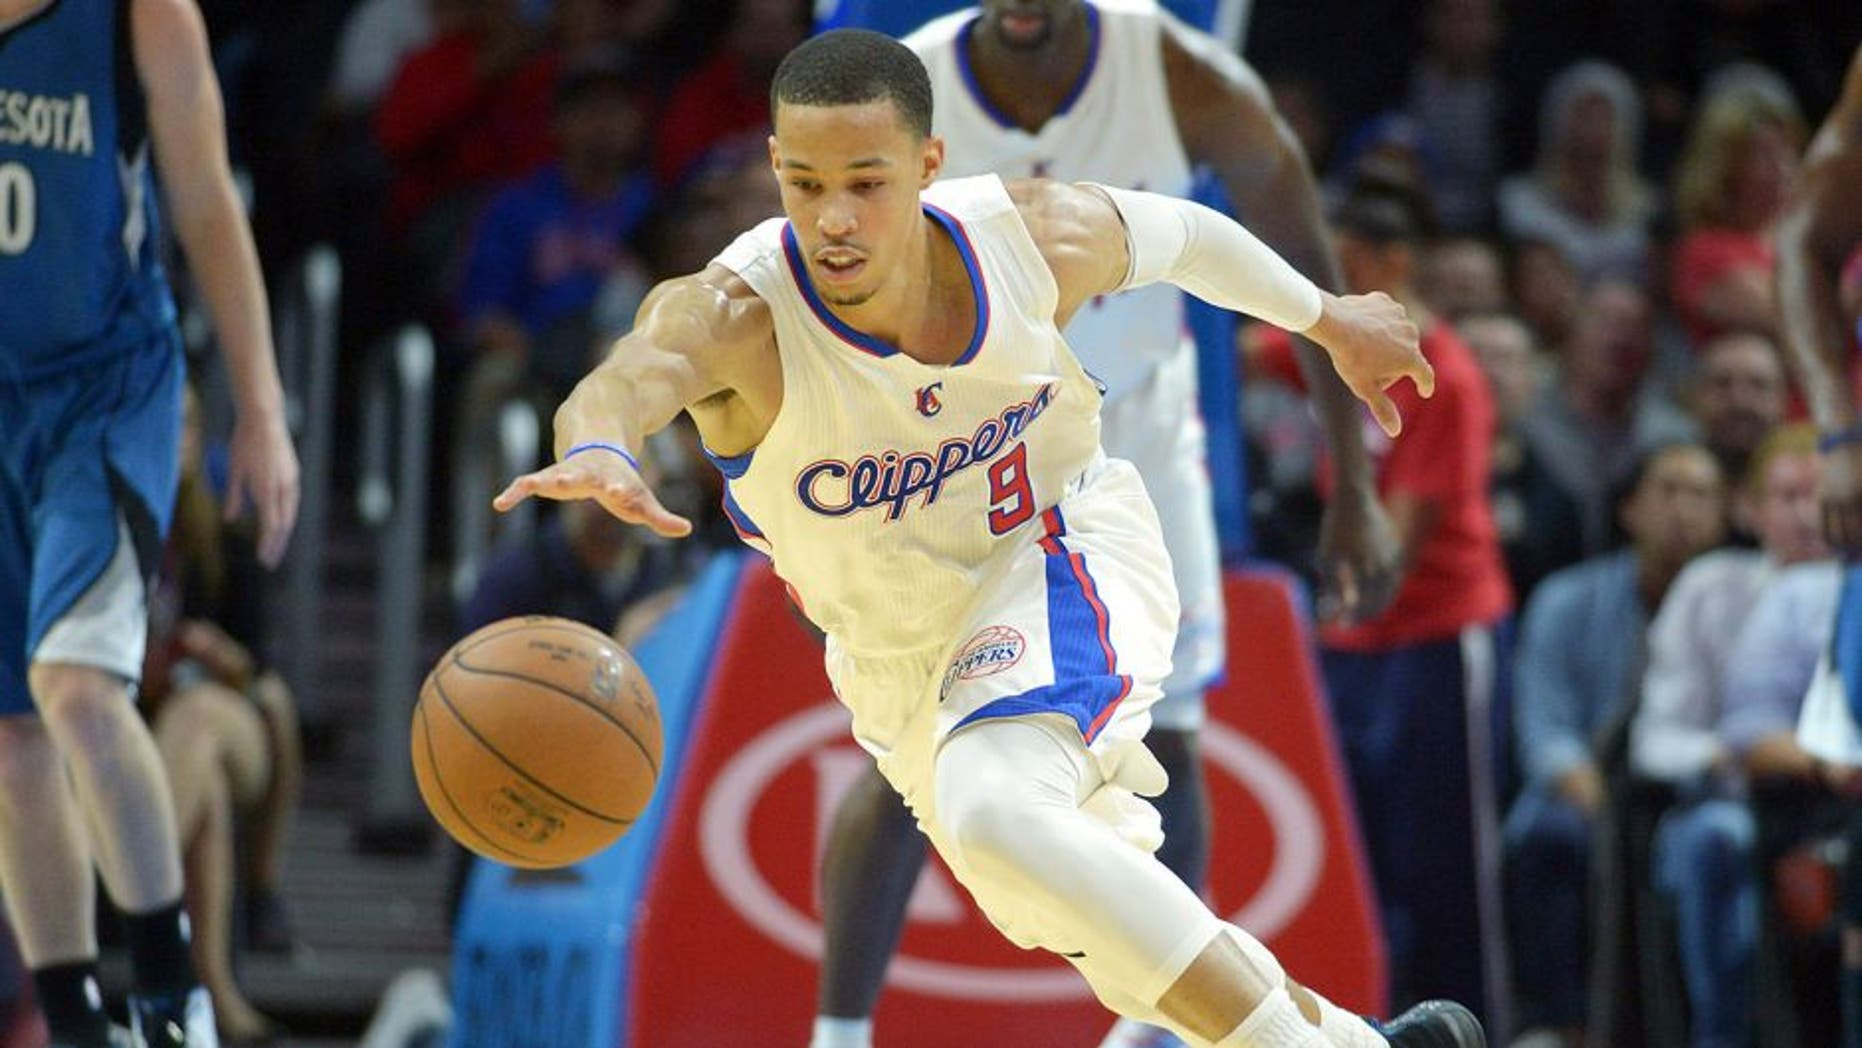 Dec 1, 2014; Los Angeles, CA, USA; Los Angeles Clippers guard Jared Cunningham (9) reaches for the ball against the Minnesota Timberwolves at Staples Center. The Clippers defeated the Timberwolves 127-101. Mandatory Credit: Kirby Lee-USA TODAY Sports